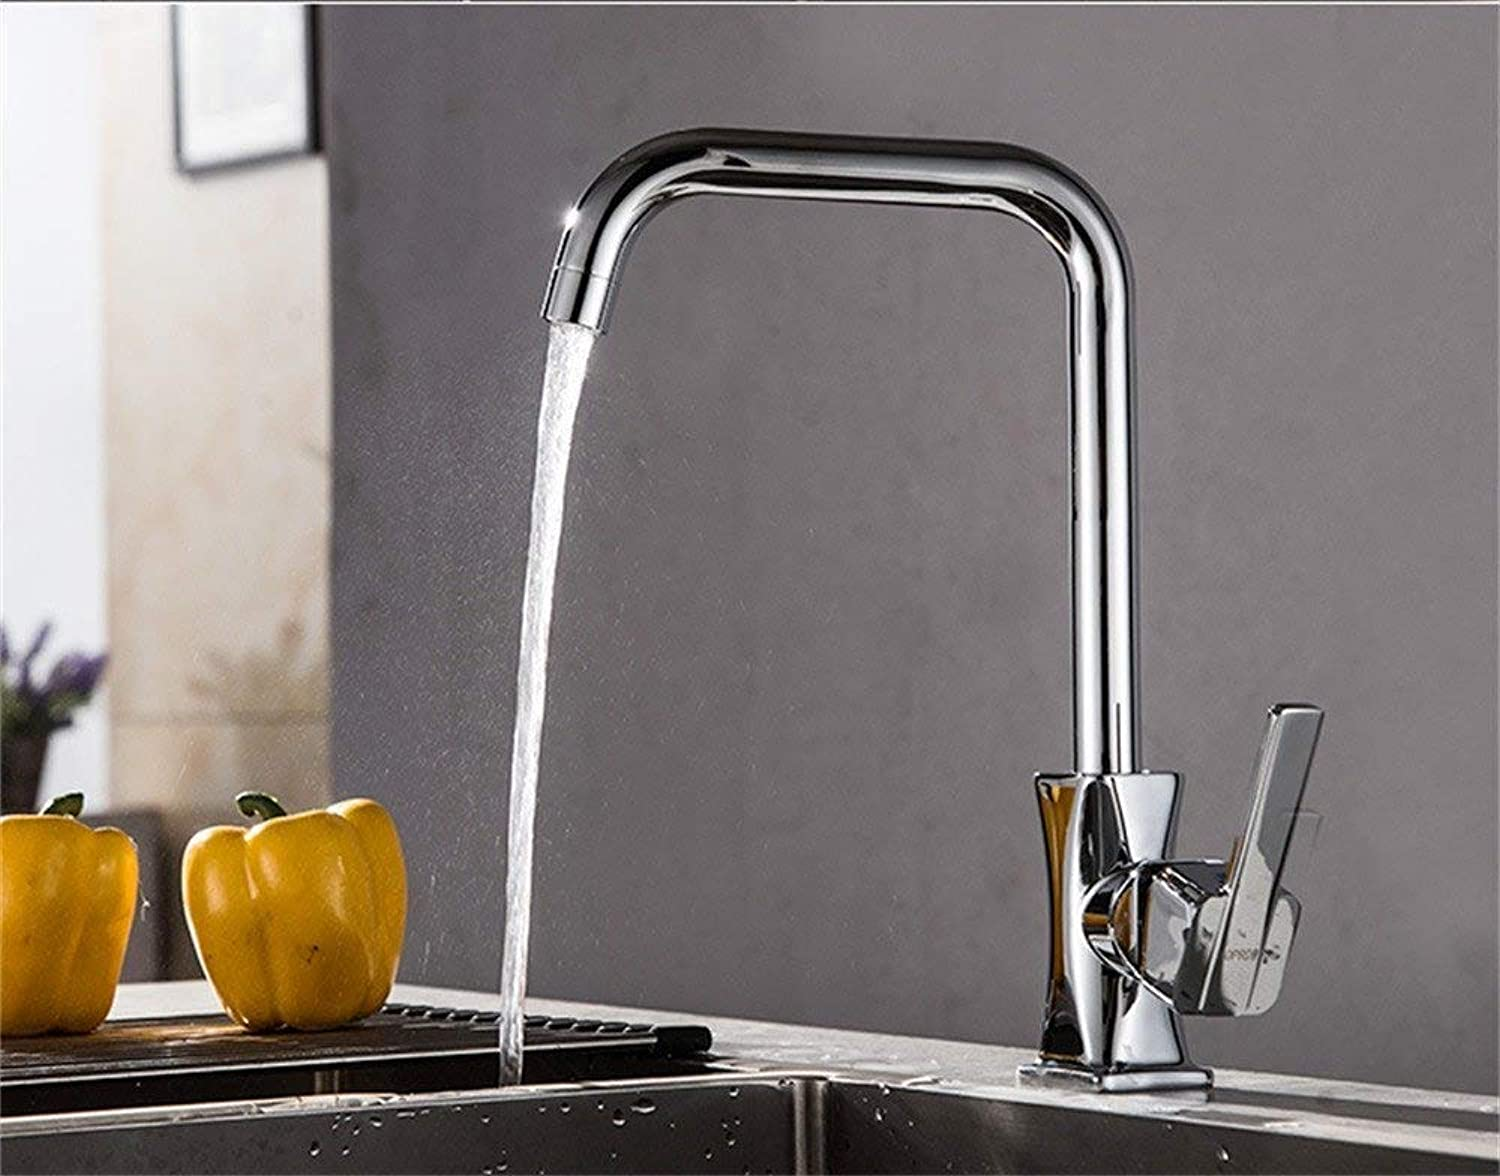 Oudan All Copper Faucet Kitchen Sink Switch 304 Stainless Steel Cold Vegetables Basin Faucet Mixing Valve redatable Ceramic Valve Core, Kitchen Faucet Waist (color   Waist Kitchen Faucet, Size   -)